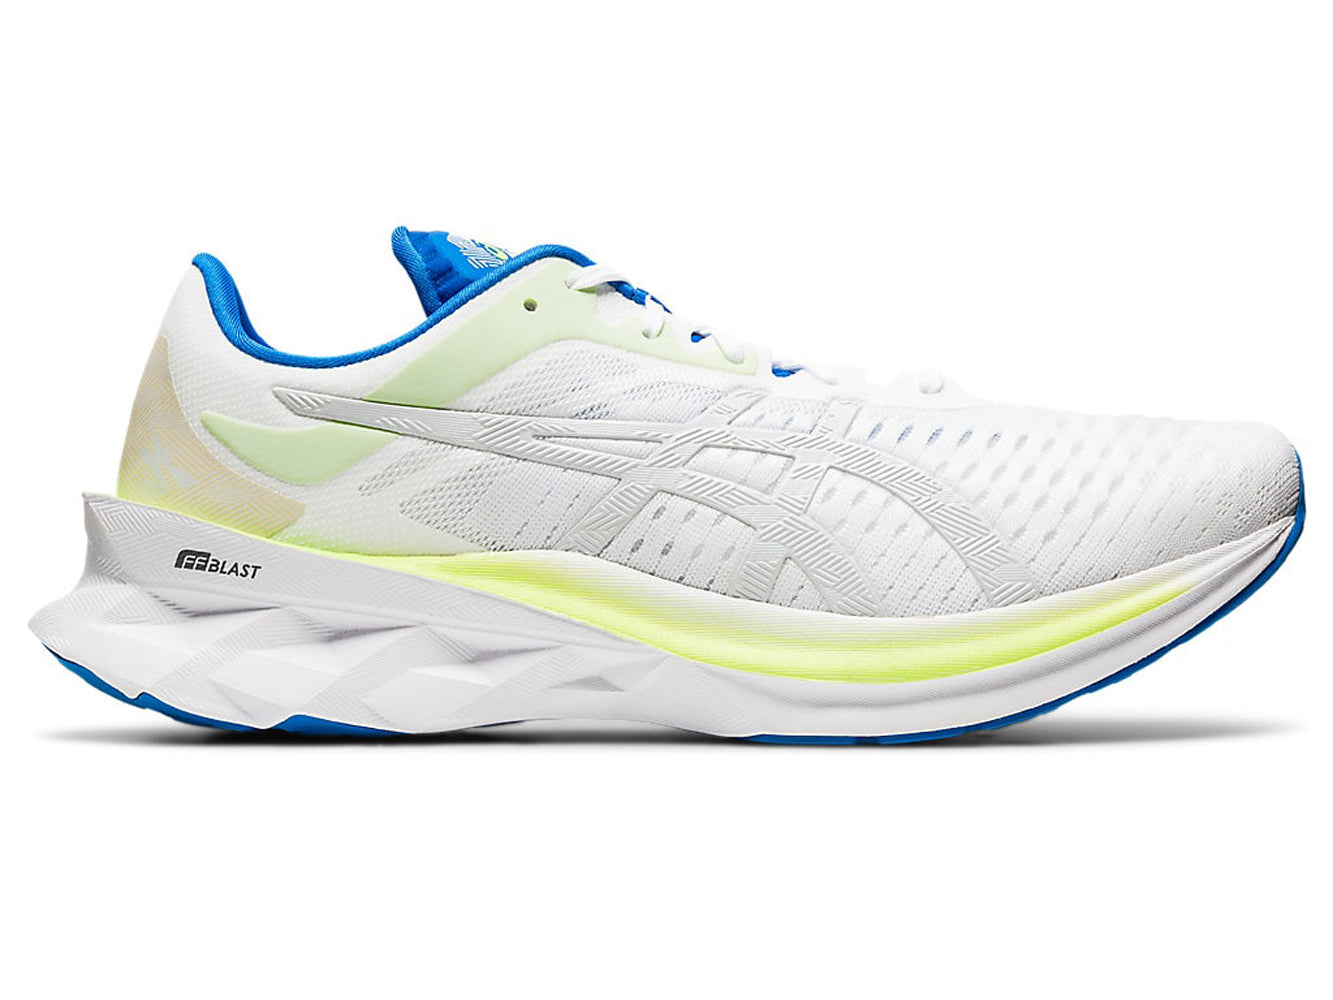 Men's Asics Novablast Running Shoe in White/Glacier Grey from the side